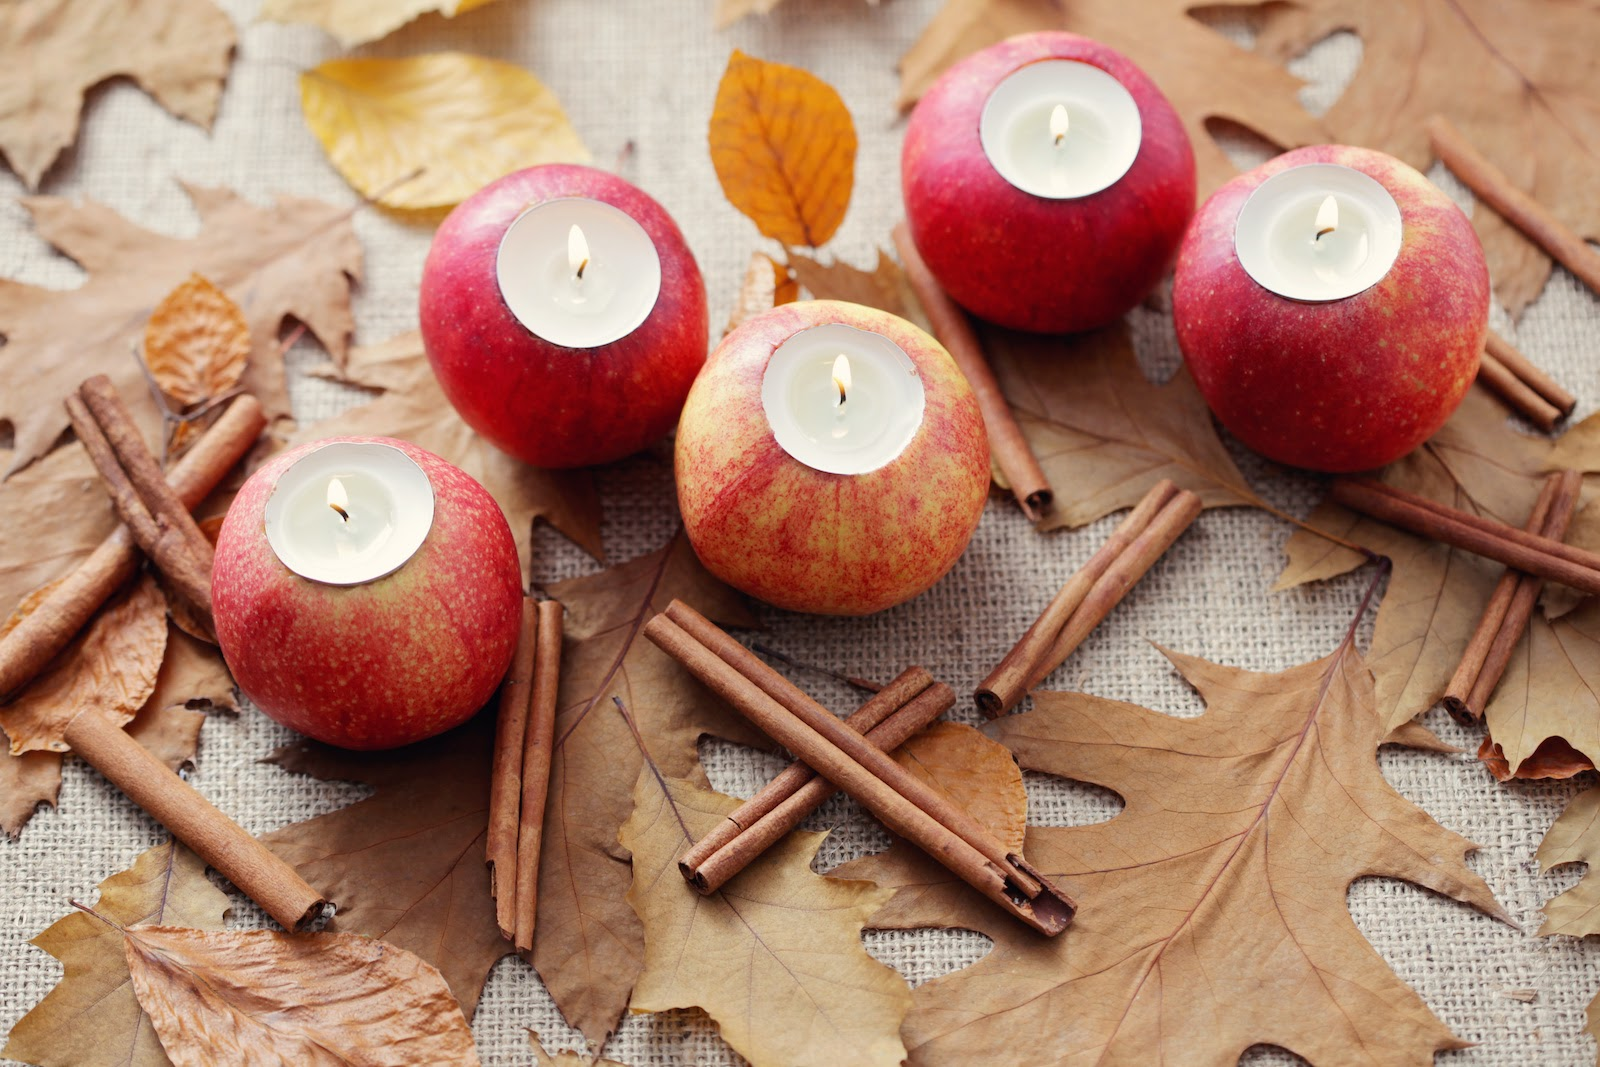 Thanksgiving decoration ideas for fruit candle holders.